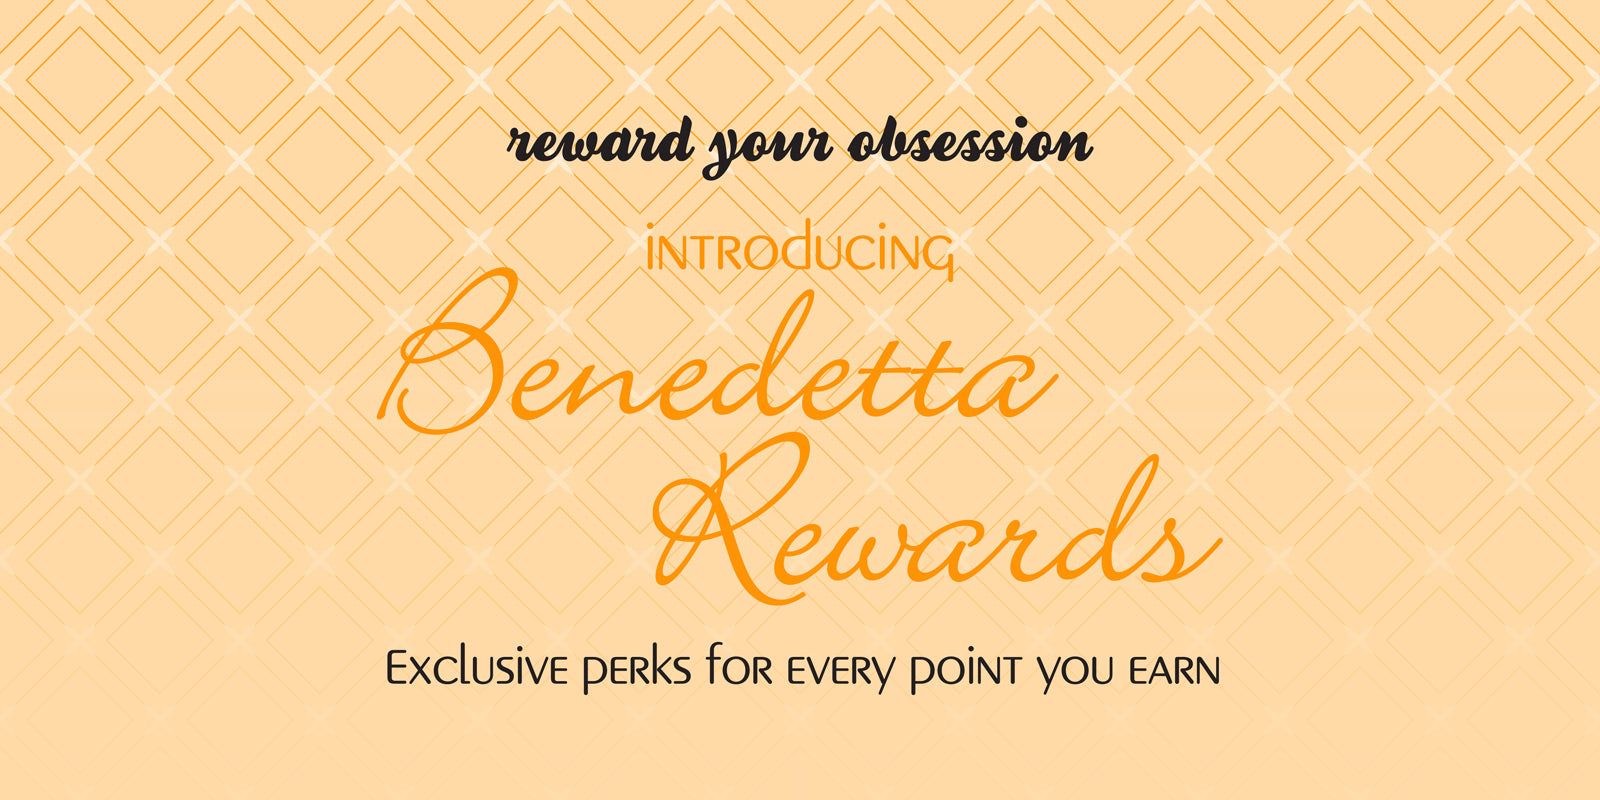 Reward Your Obsession with our New Benedetta Rewards Program! Earn exclusive perks with every point